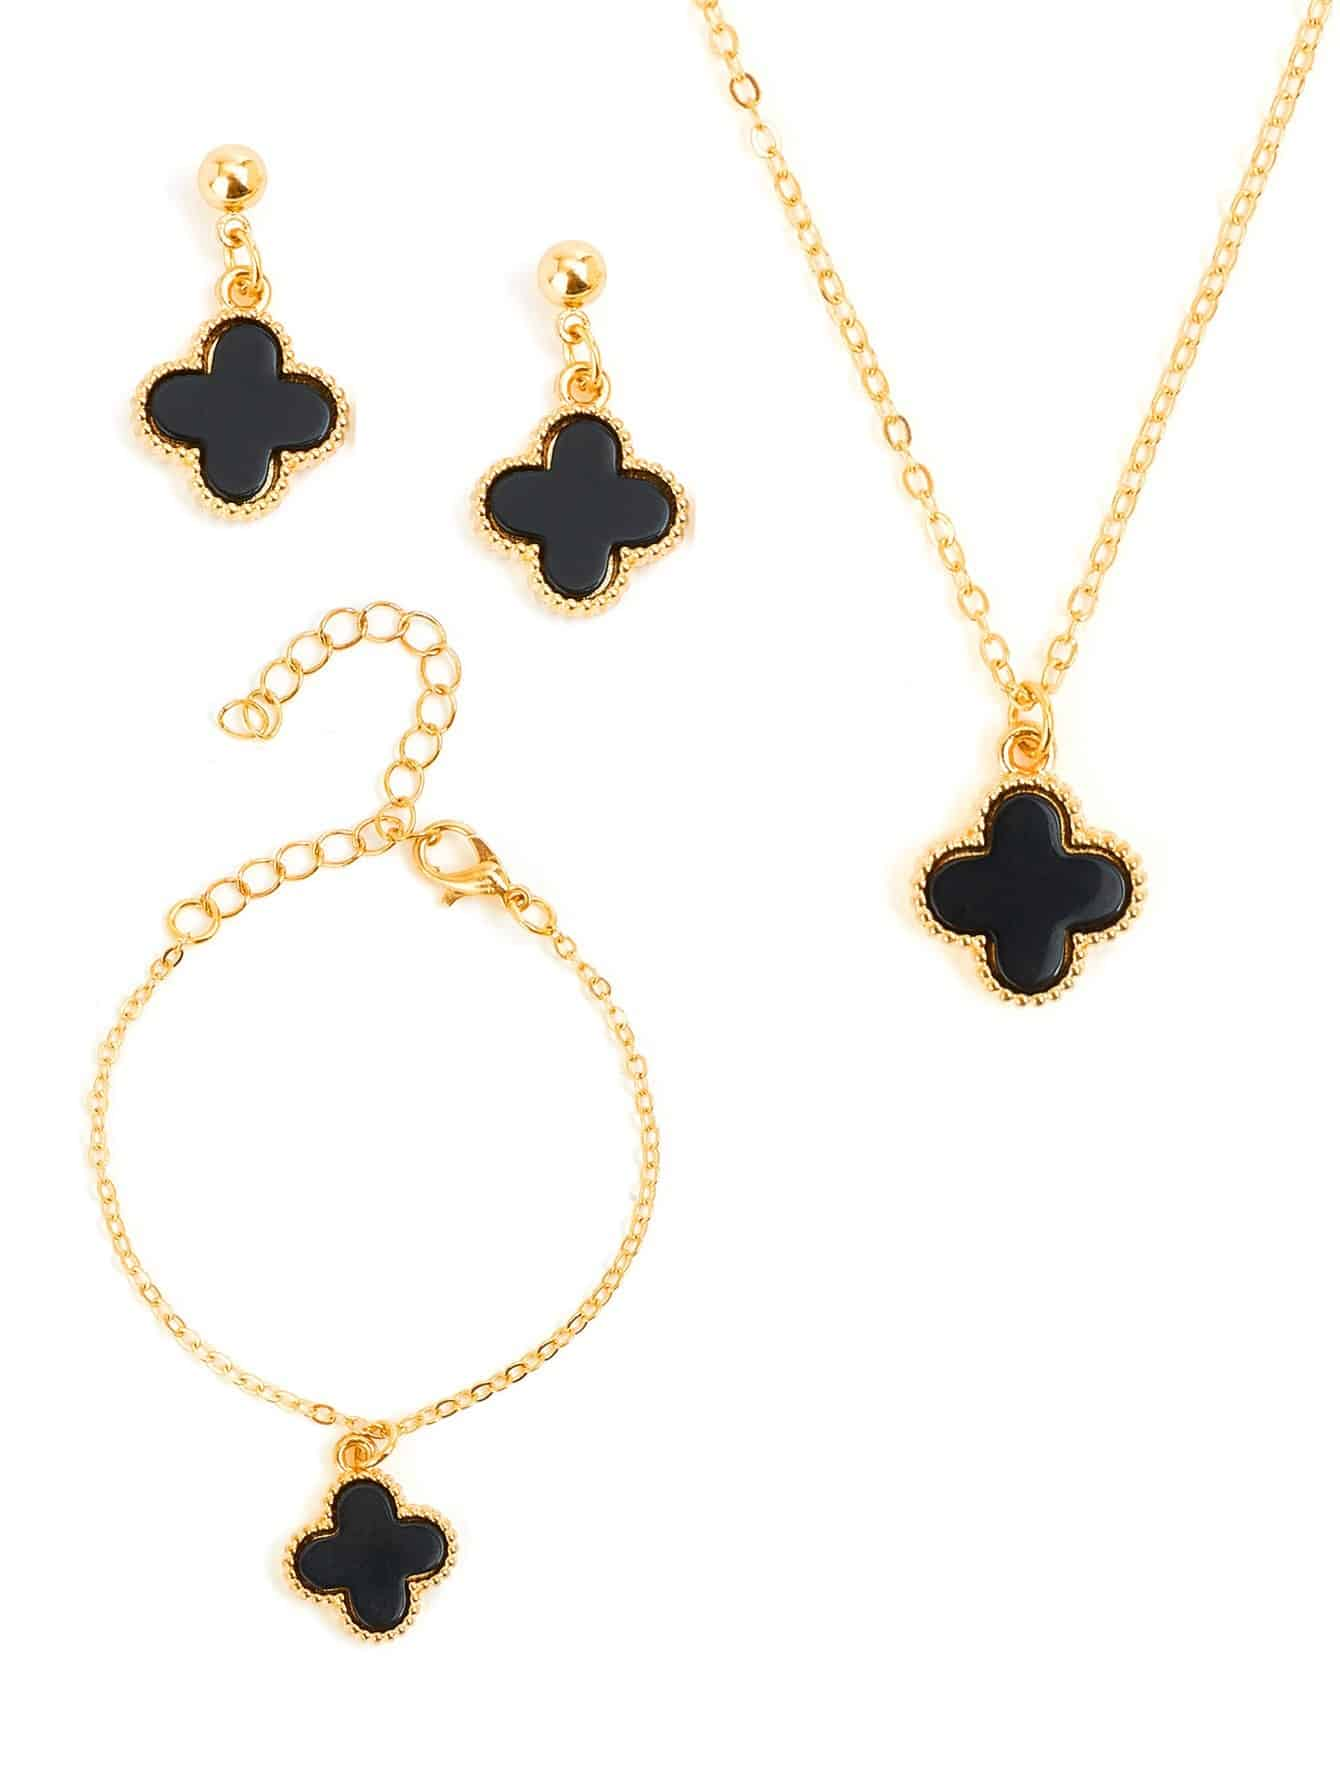 Black With Golden Flower Charm With Earrings, Bracelet & Necklace